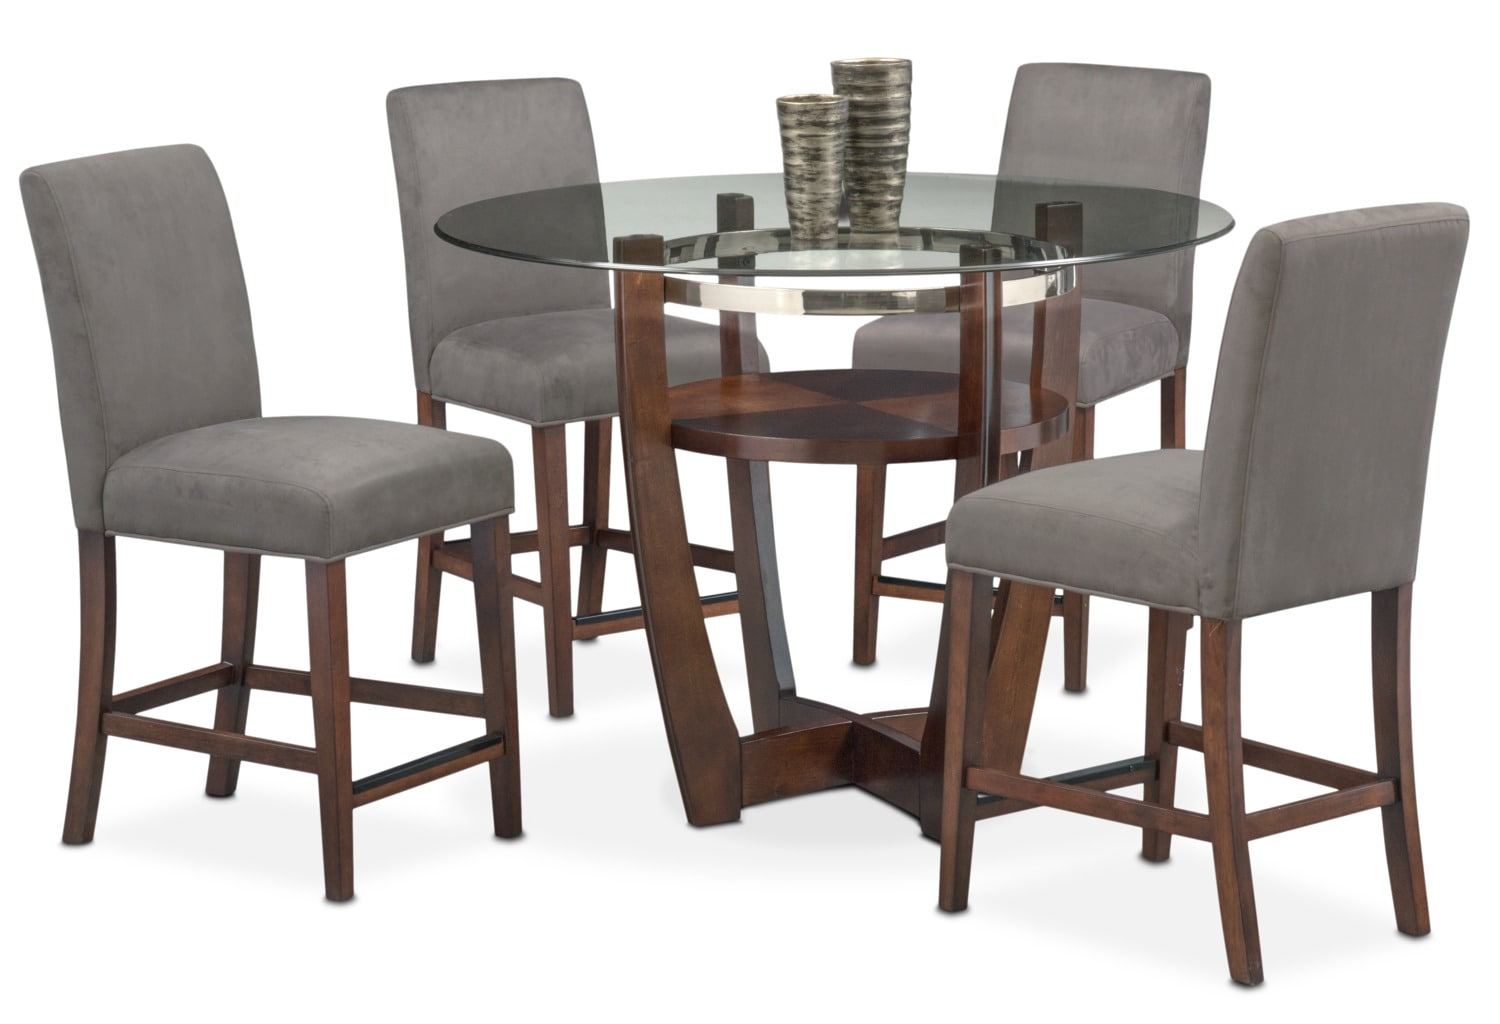 Dining Room Furniture - Alcove Counter-Height Dinette with 4 Counter-Height Stools